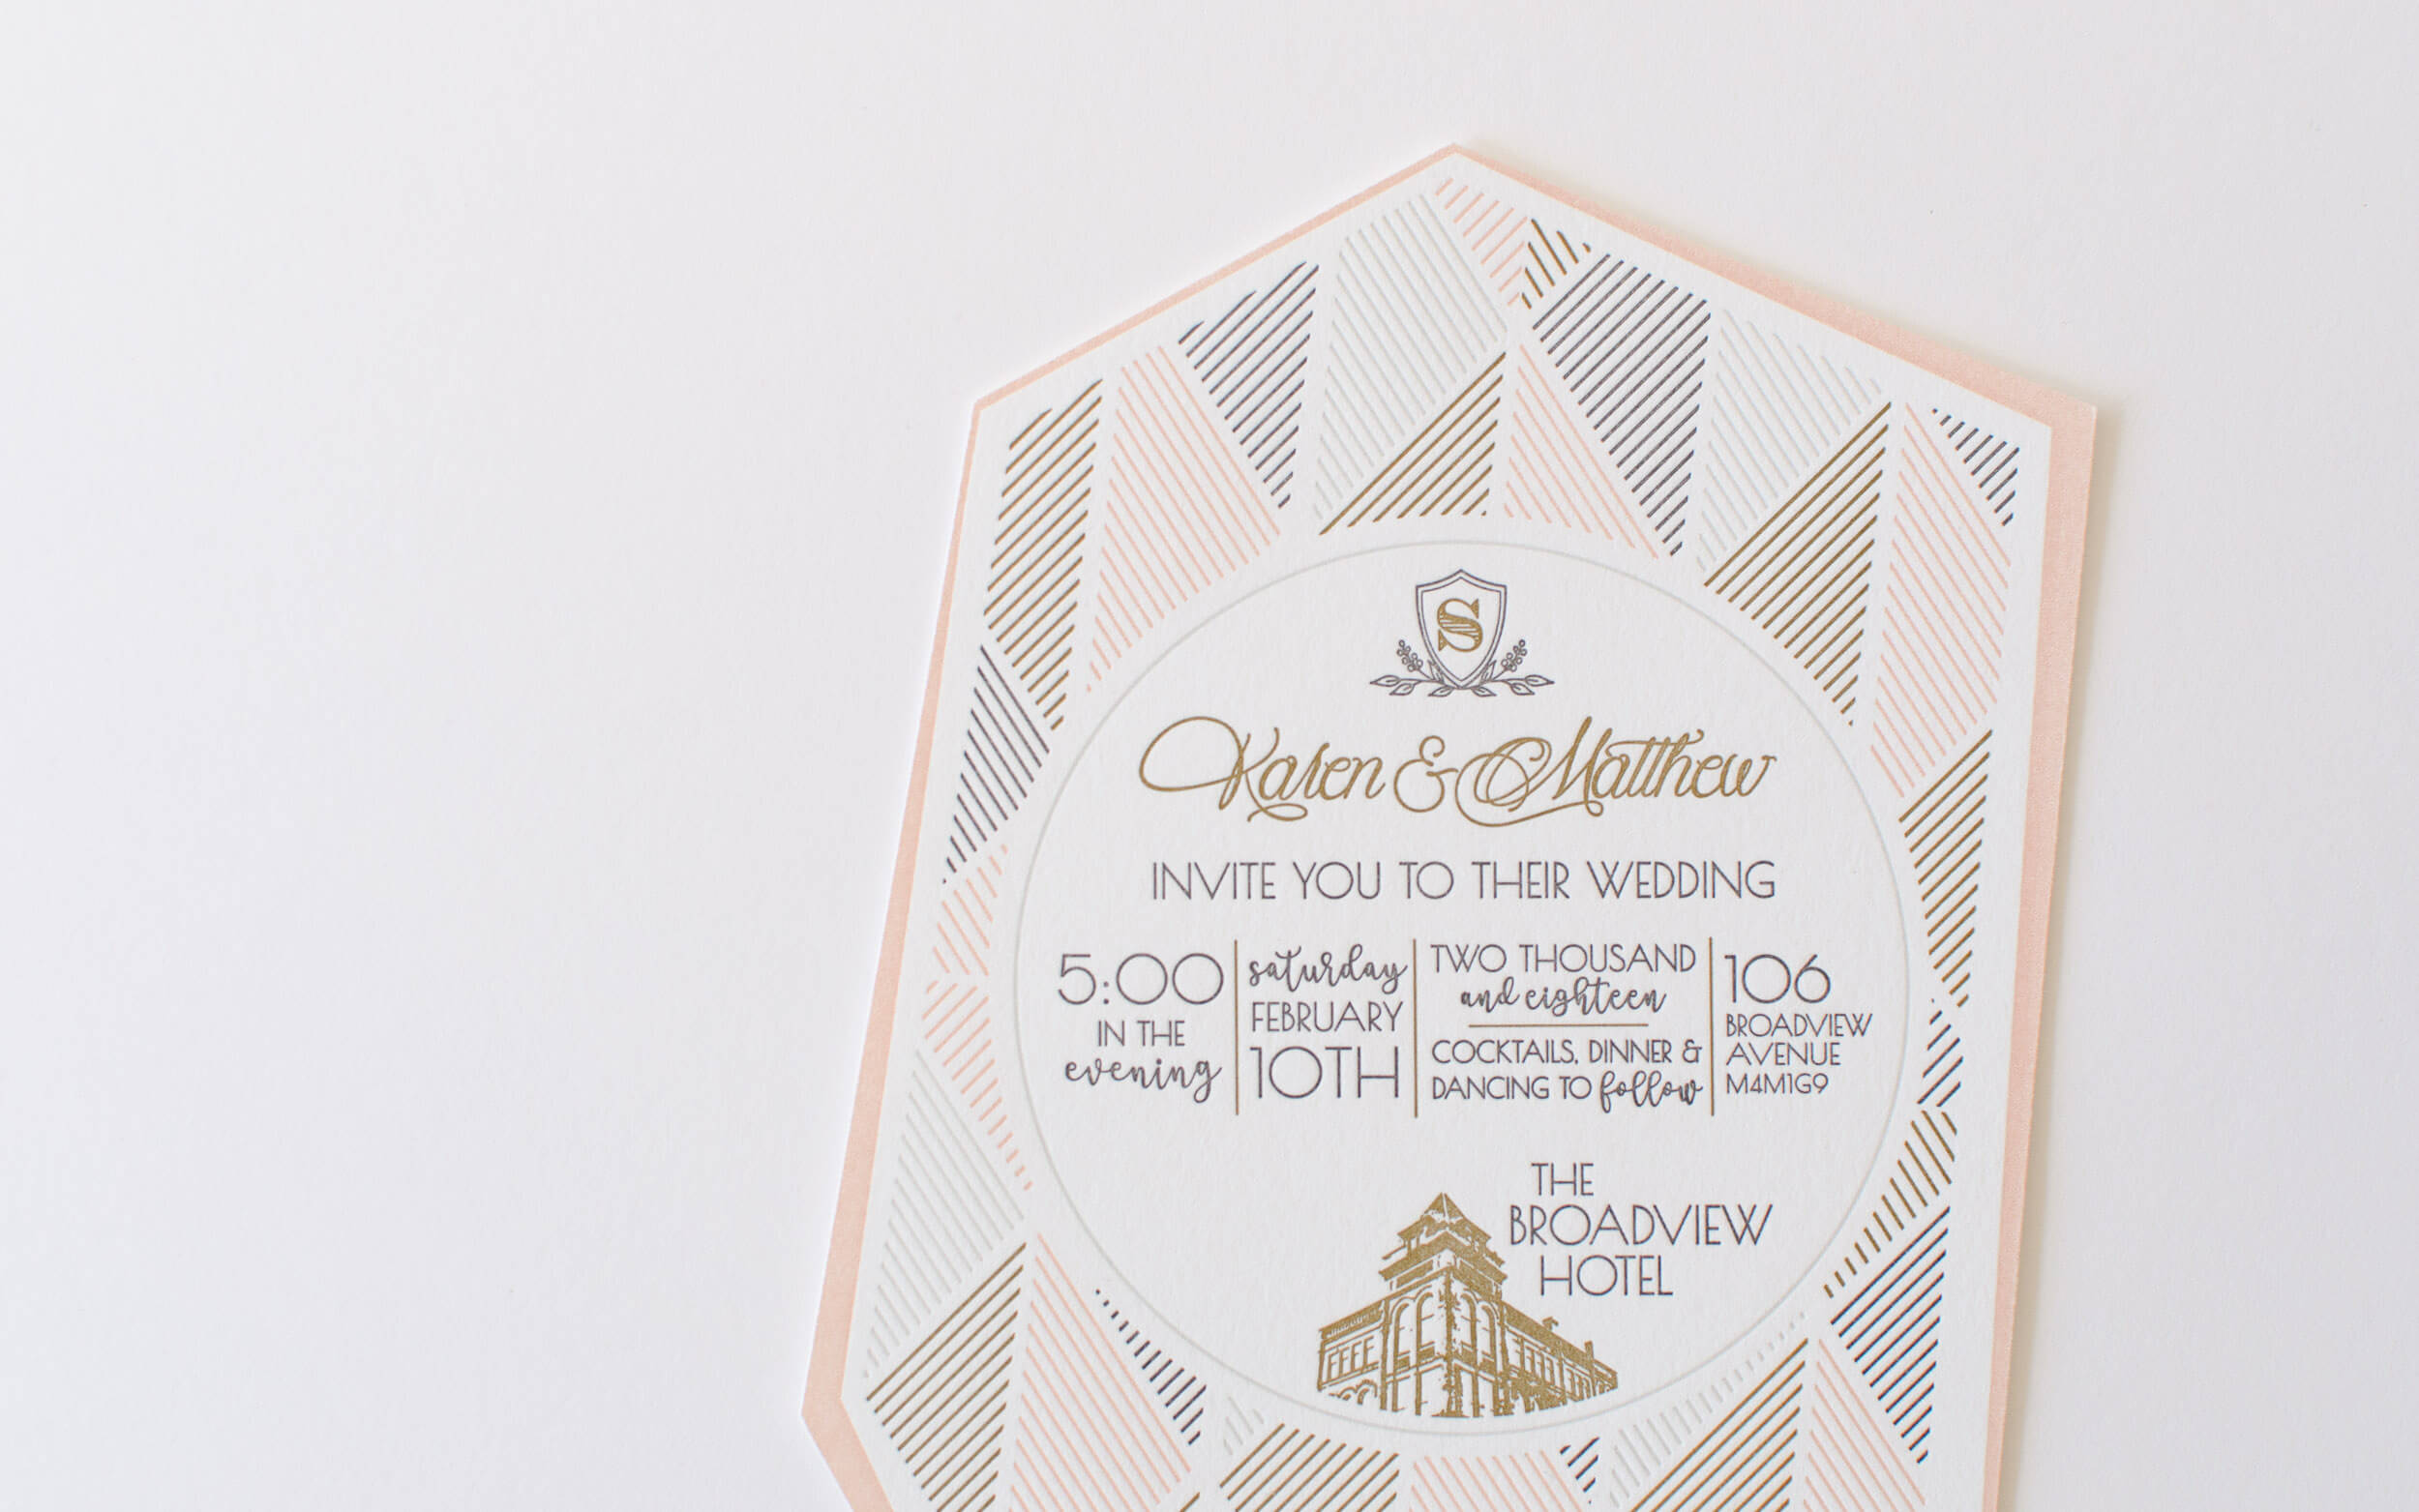 KarenMatthew_Letterpress-Wedding-Invite-4.jpg